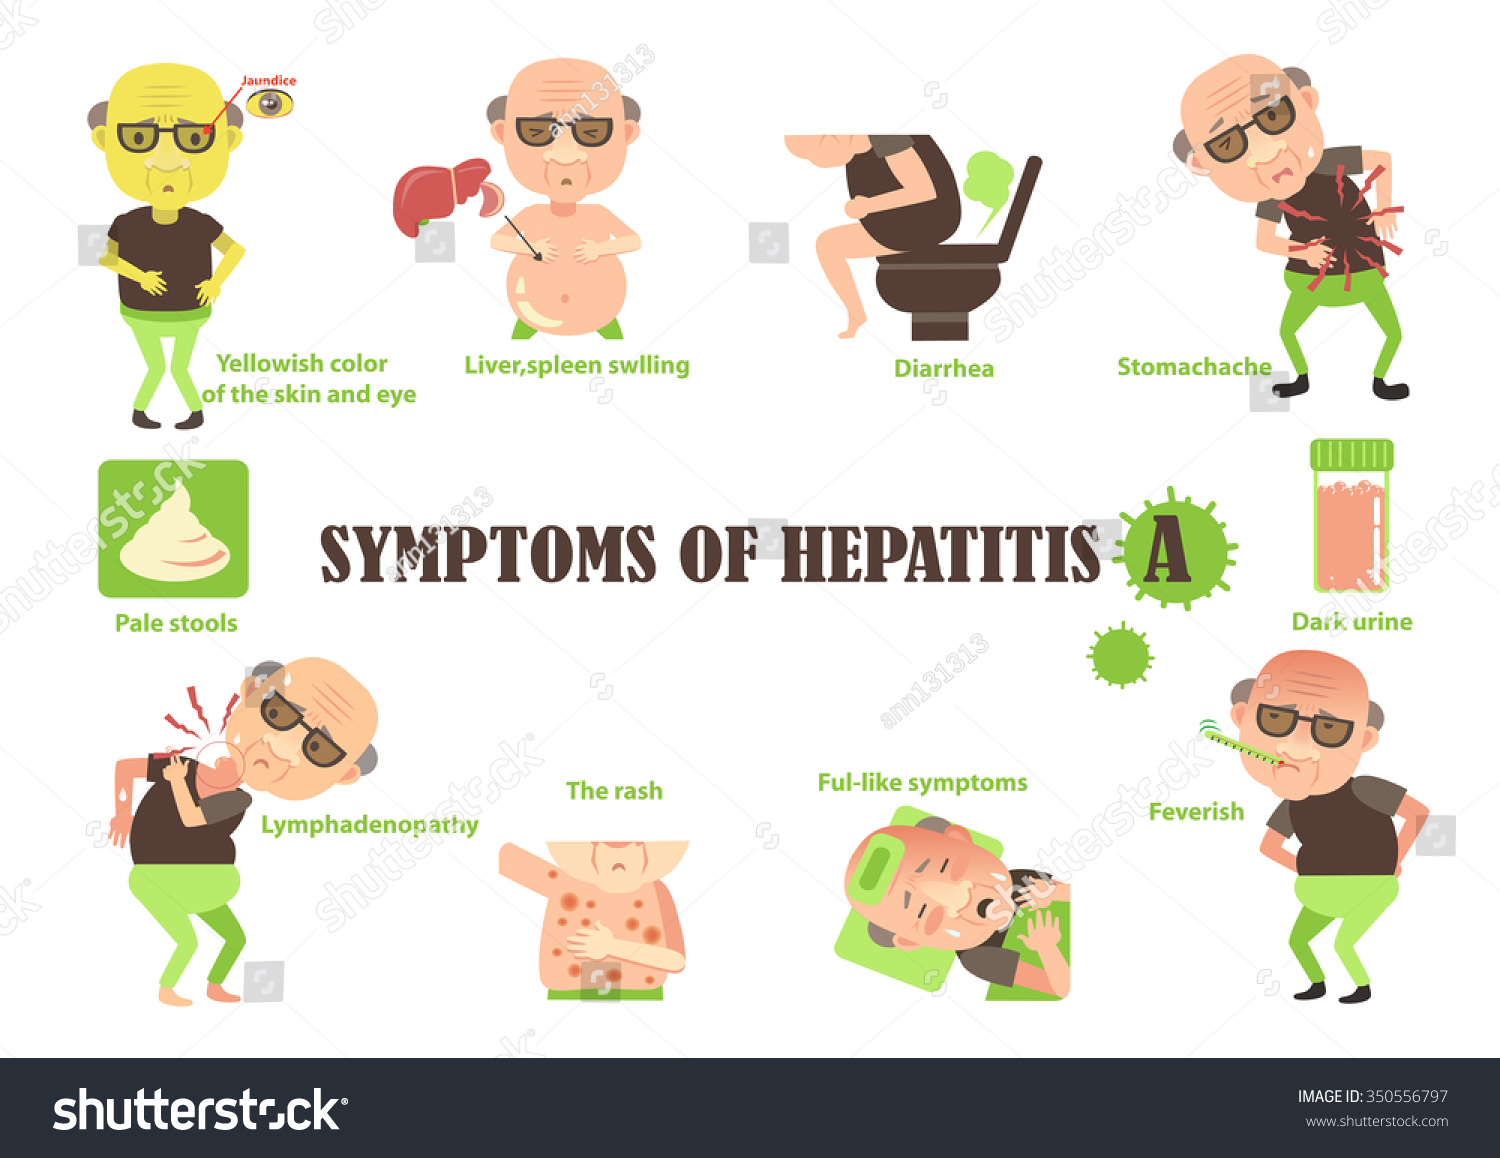 What Type Of Hepatitis Do You Get From Food